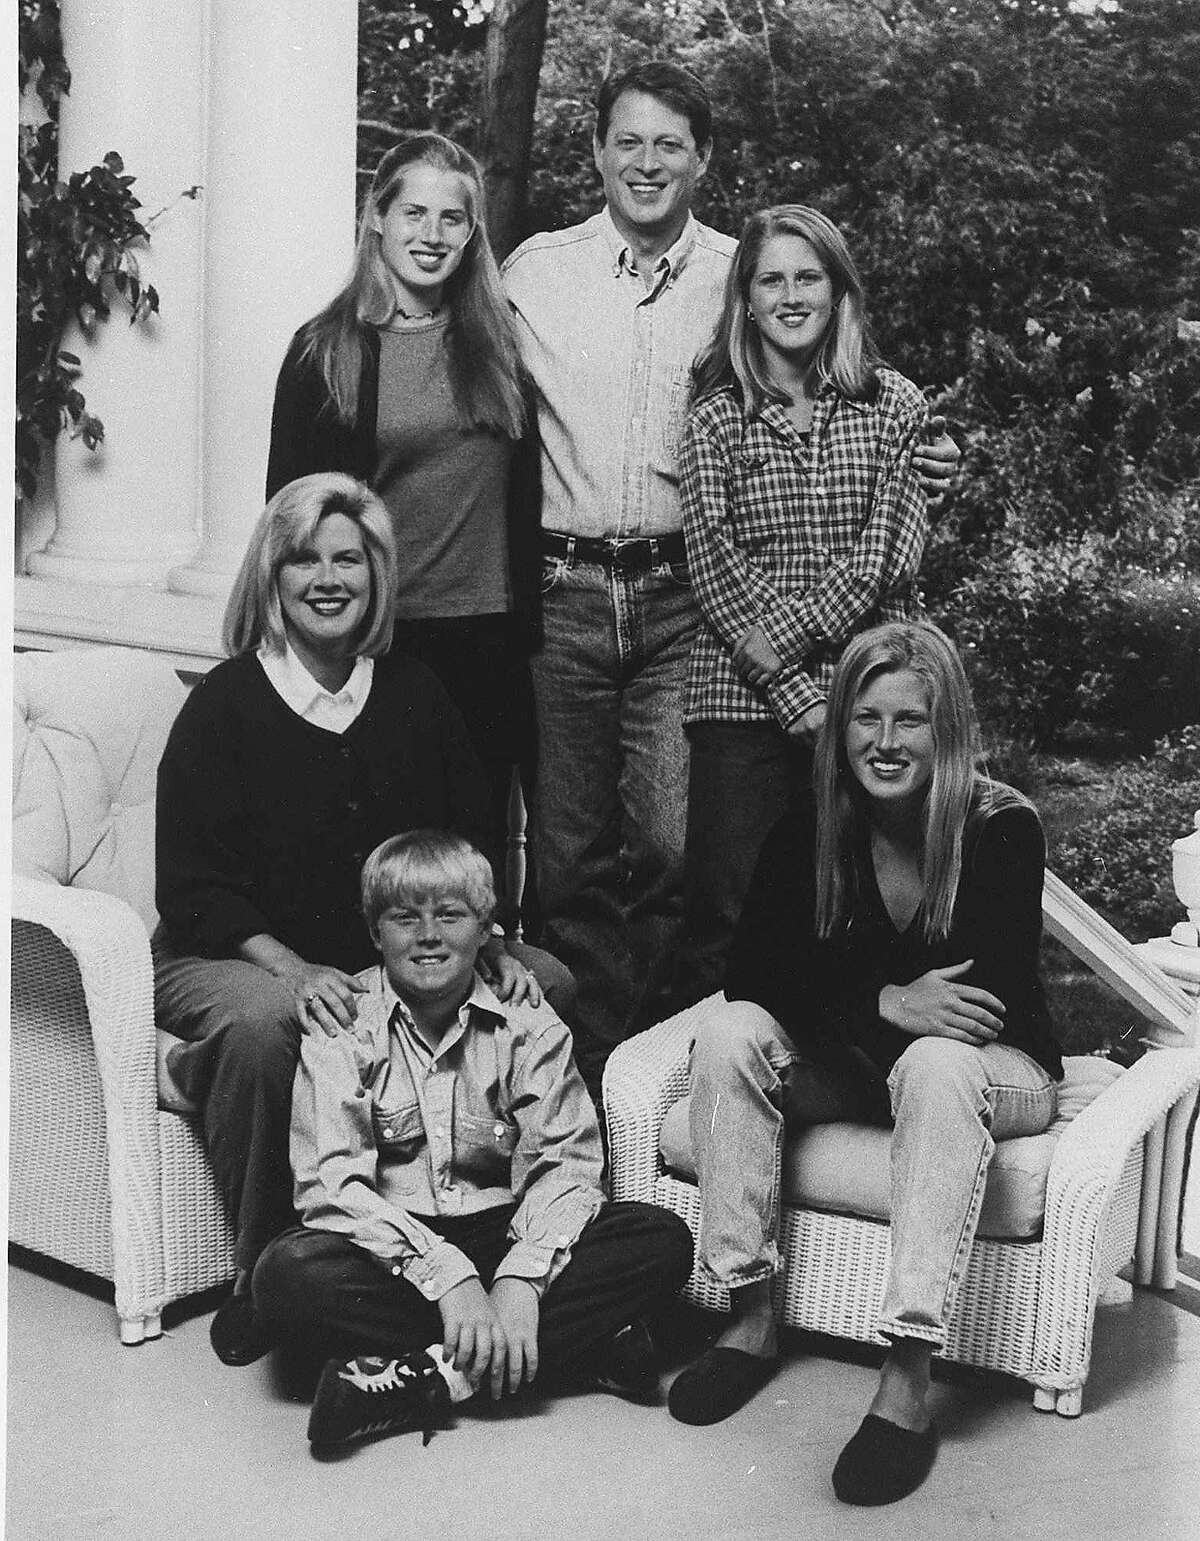 The Gore family in 1995.